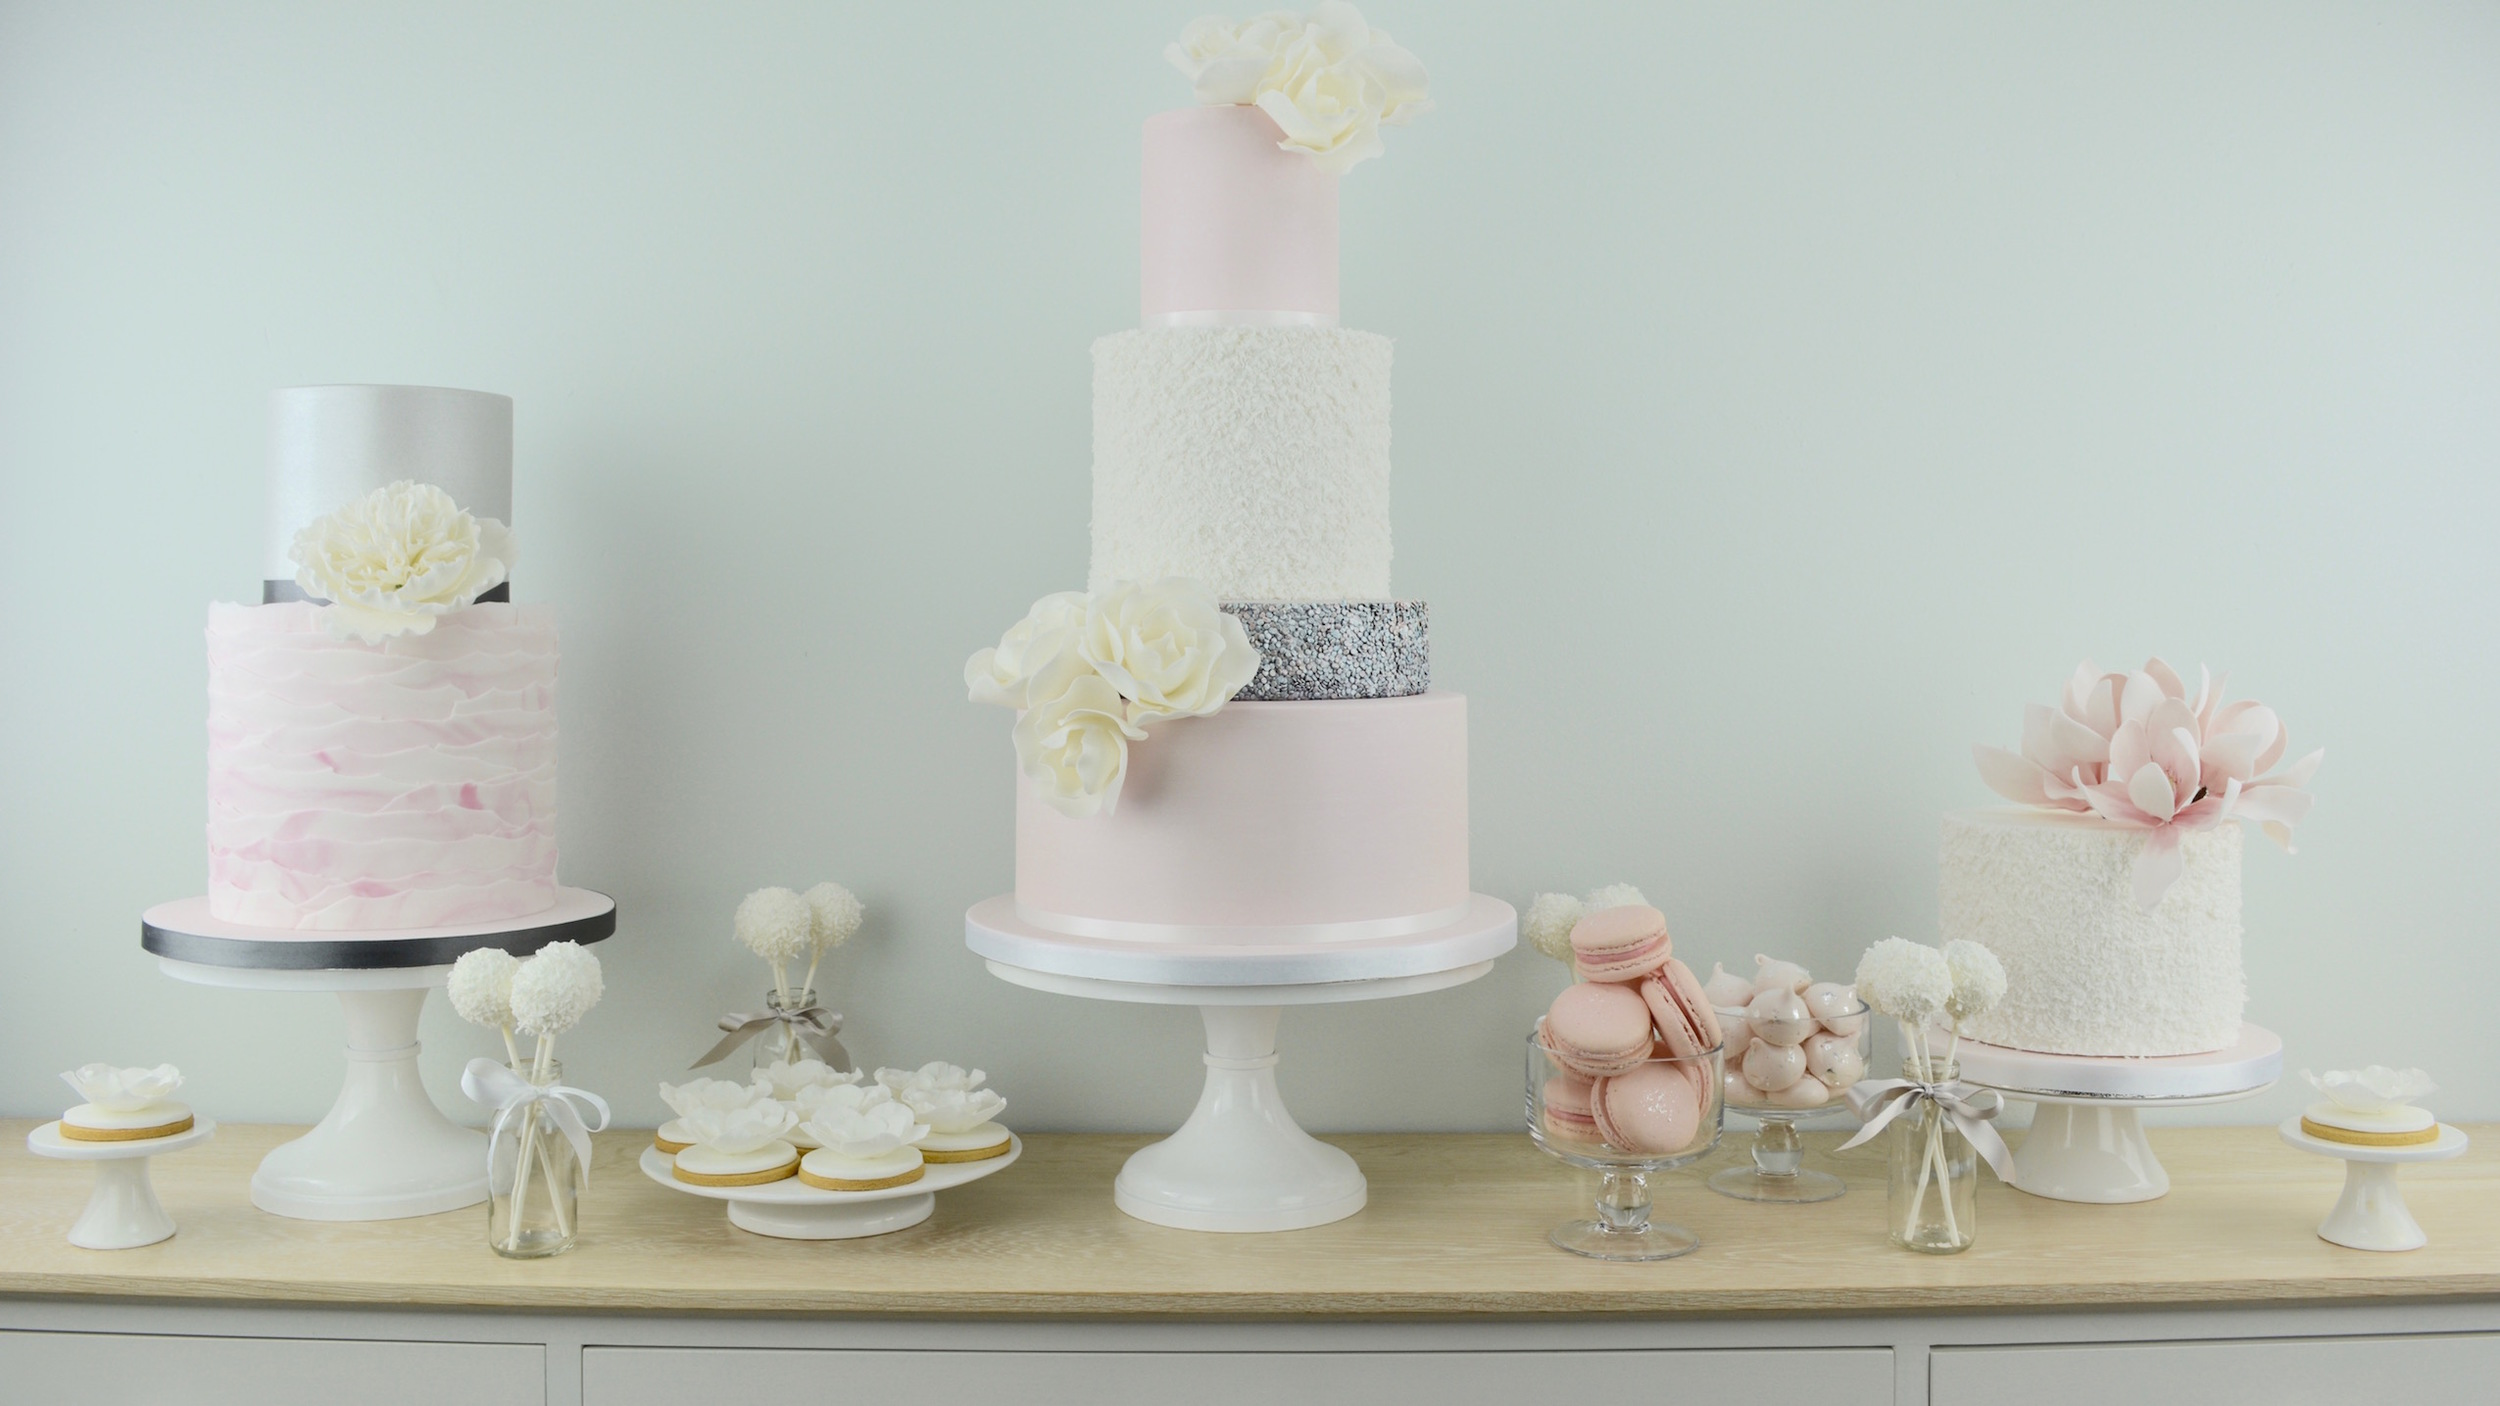 wedding cakes yorkshire - 5000+ Simple Wedding Cakes